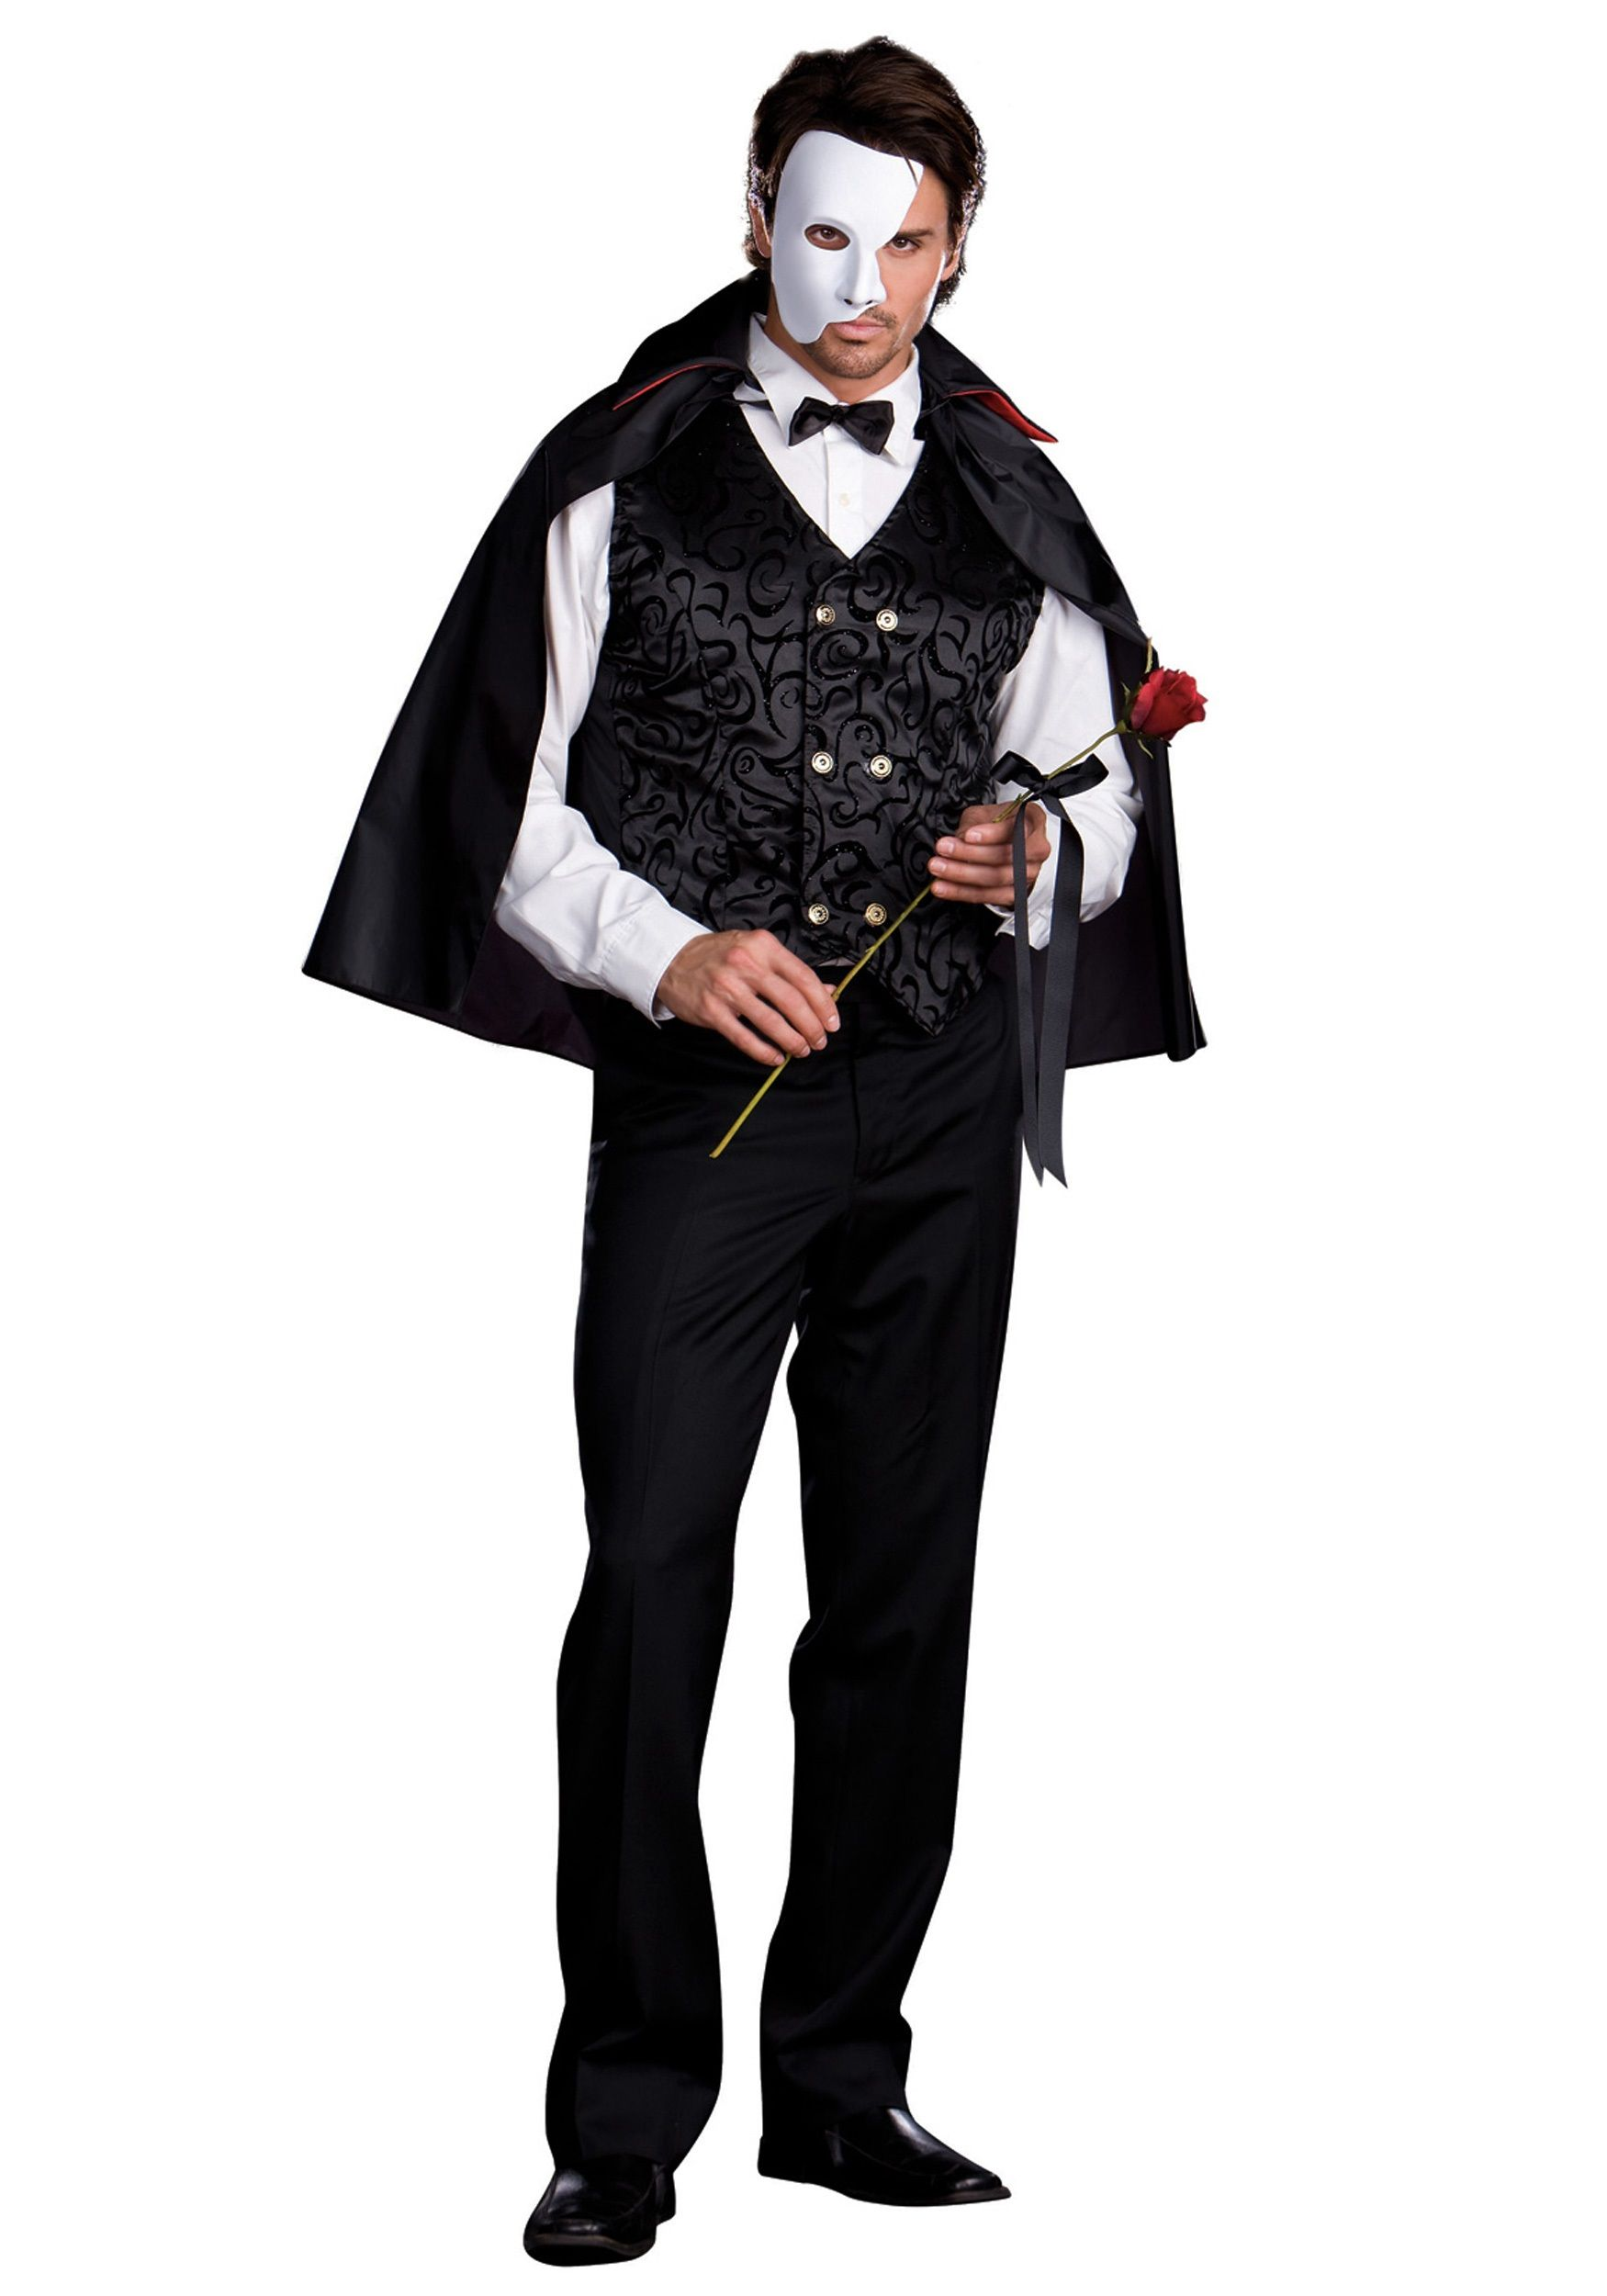 masquerade outfit ideas home halloween costume ideas scary costumes adult scary costumes opera - Halloween Costumes With A Masquerade Mask